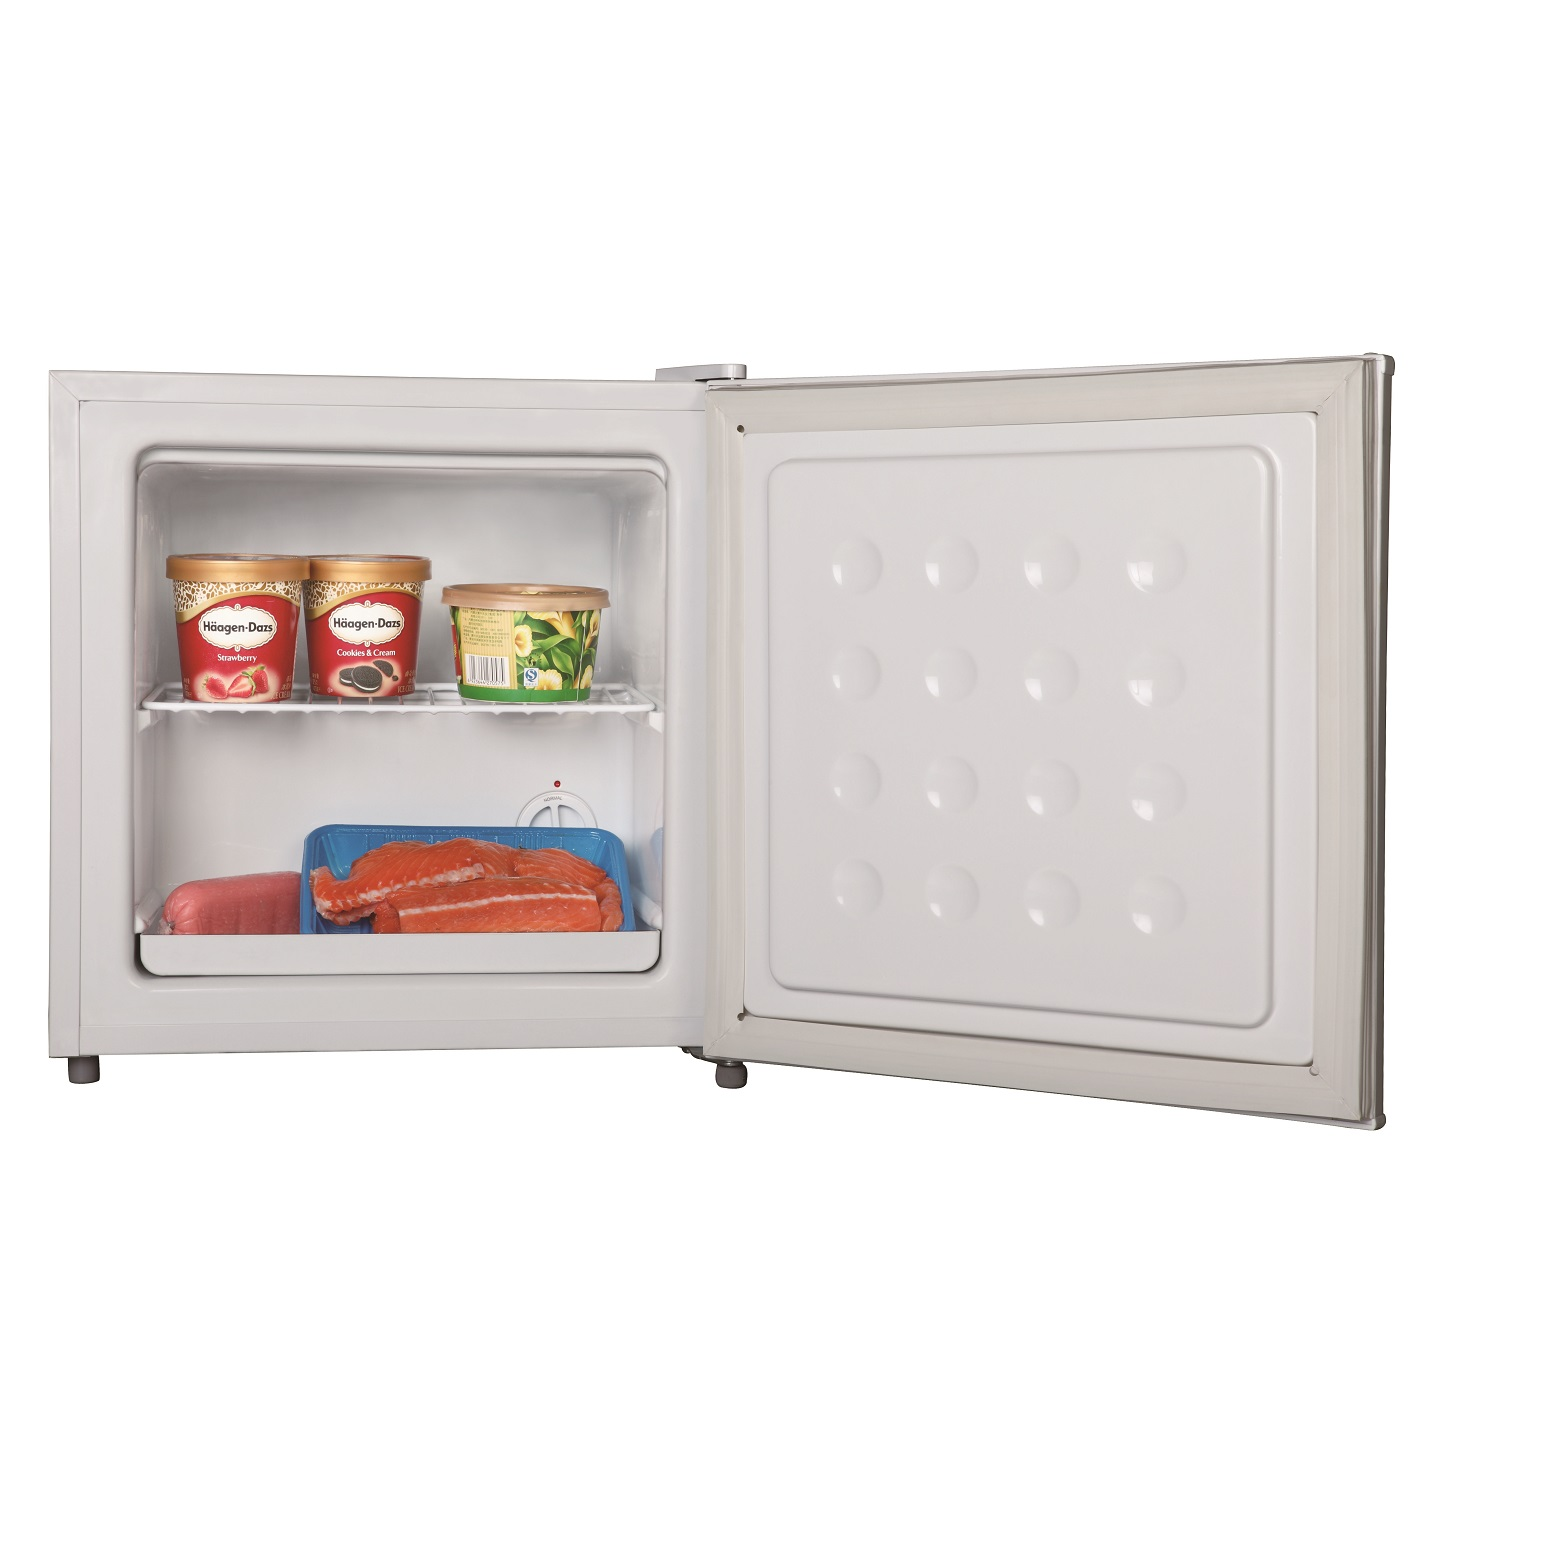 FR 52-11 W- Defrost Upright Freezer White- Capacity 1.1 cu.ft